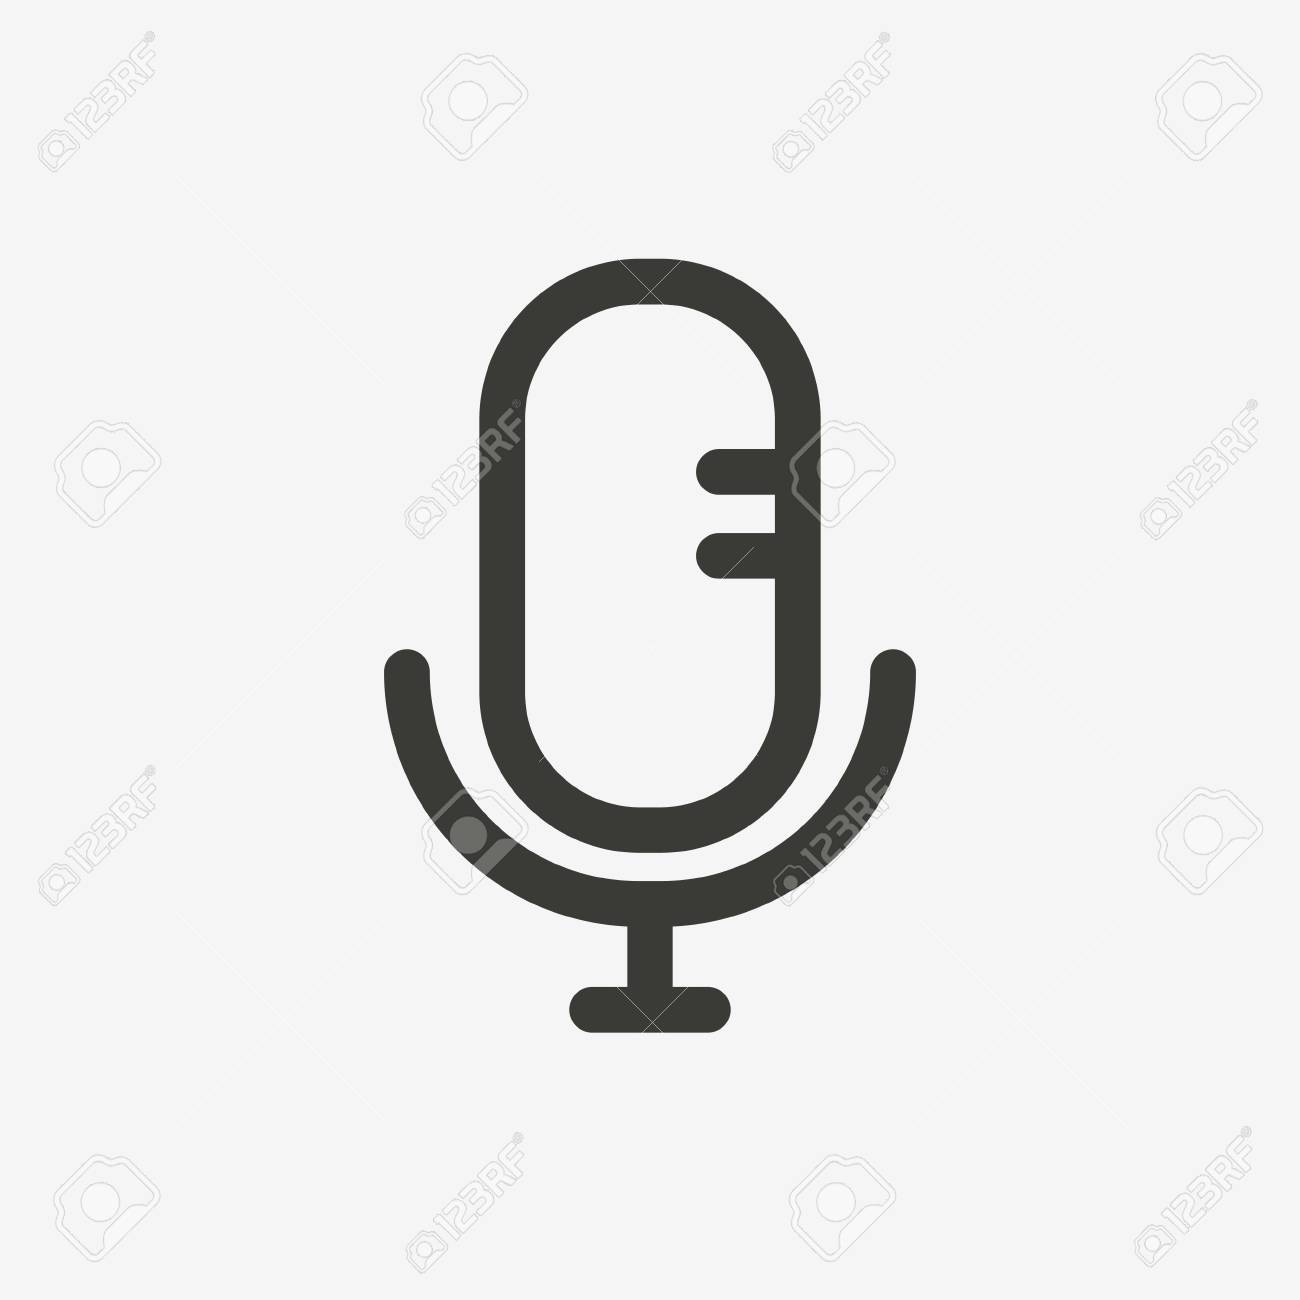 Microphone Icon In Brown Outline For Application Or Decoration